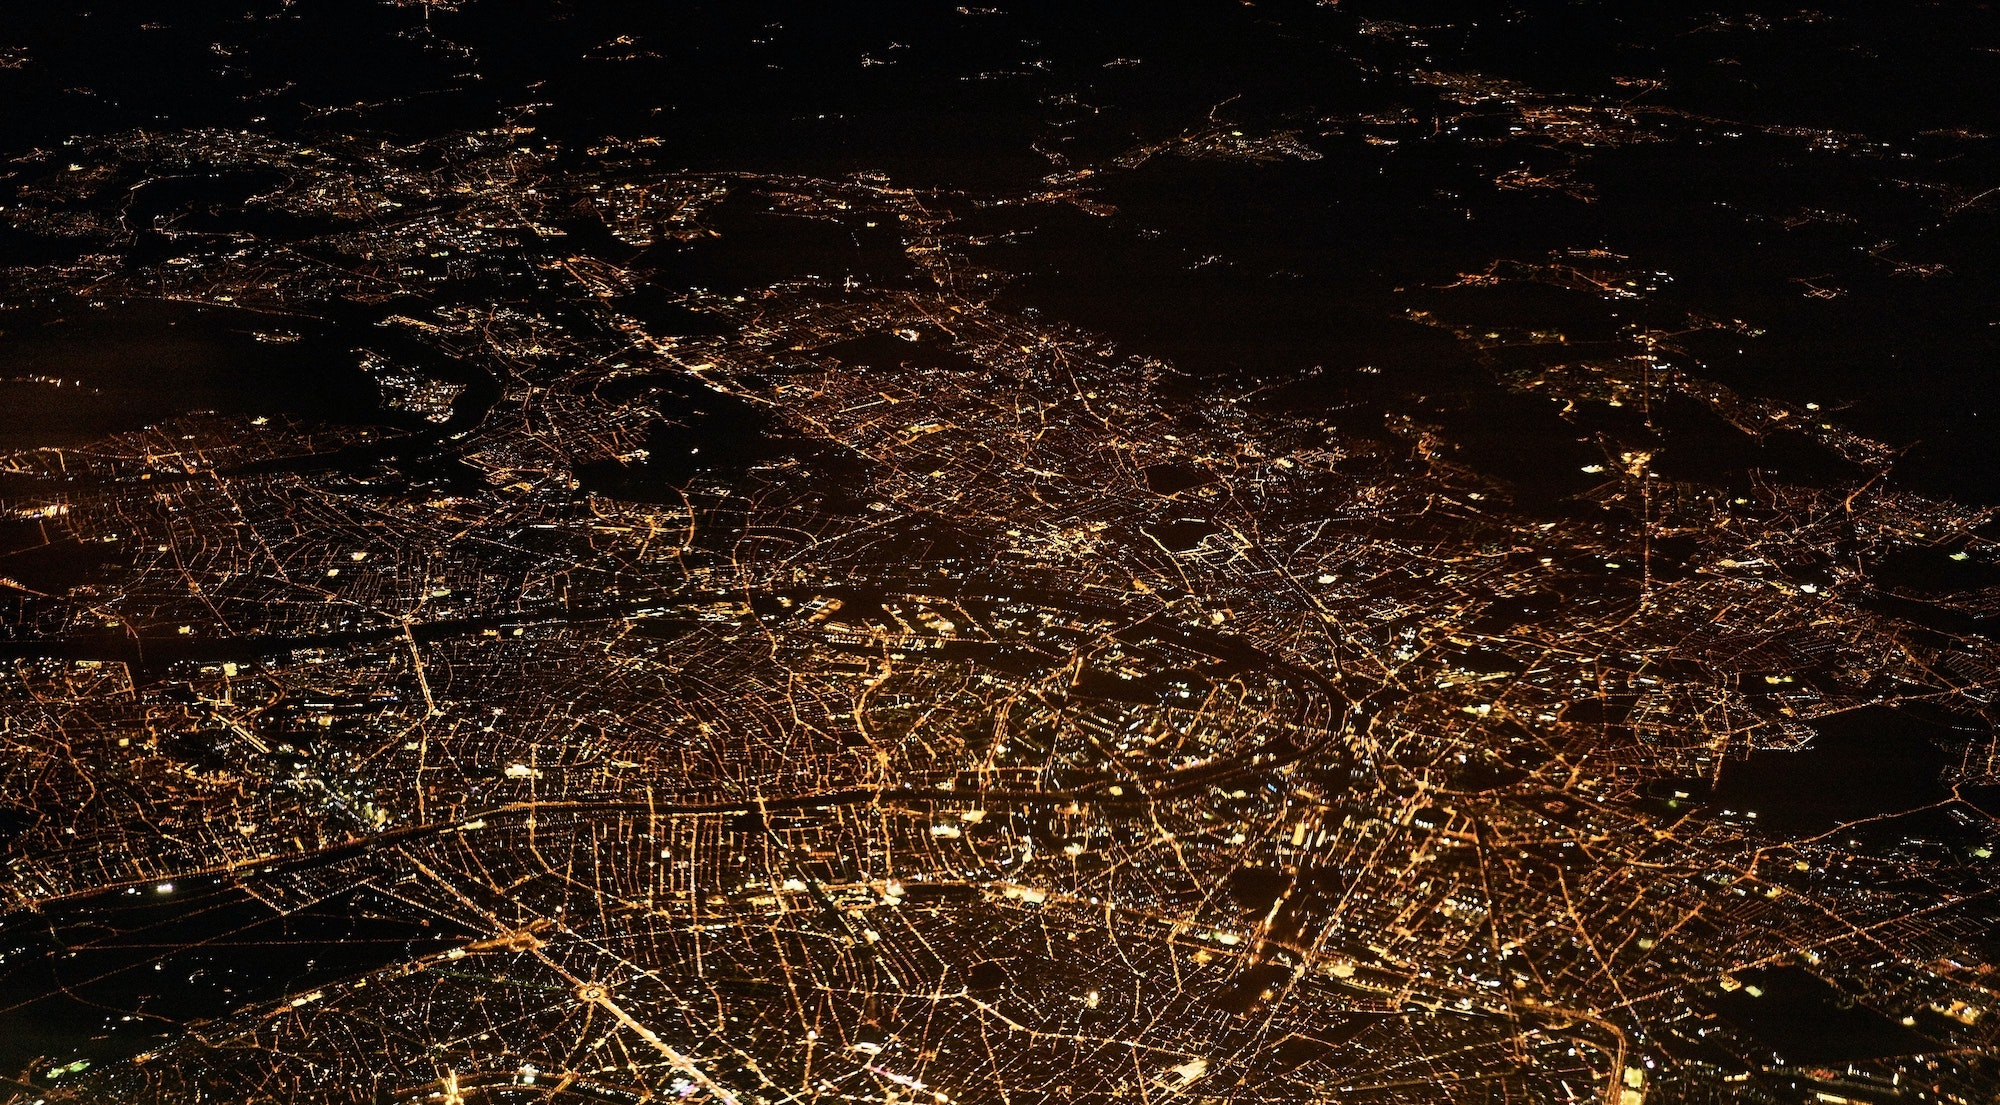 nighttime aerial photo of a city landscape